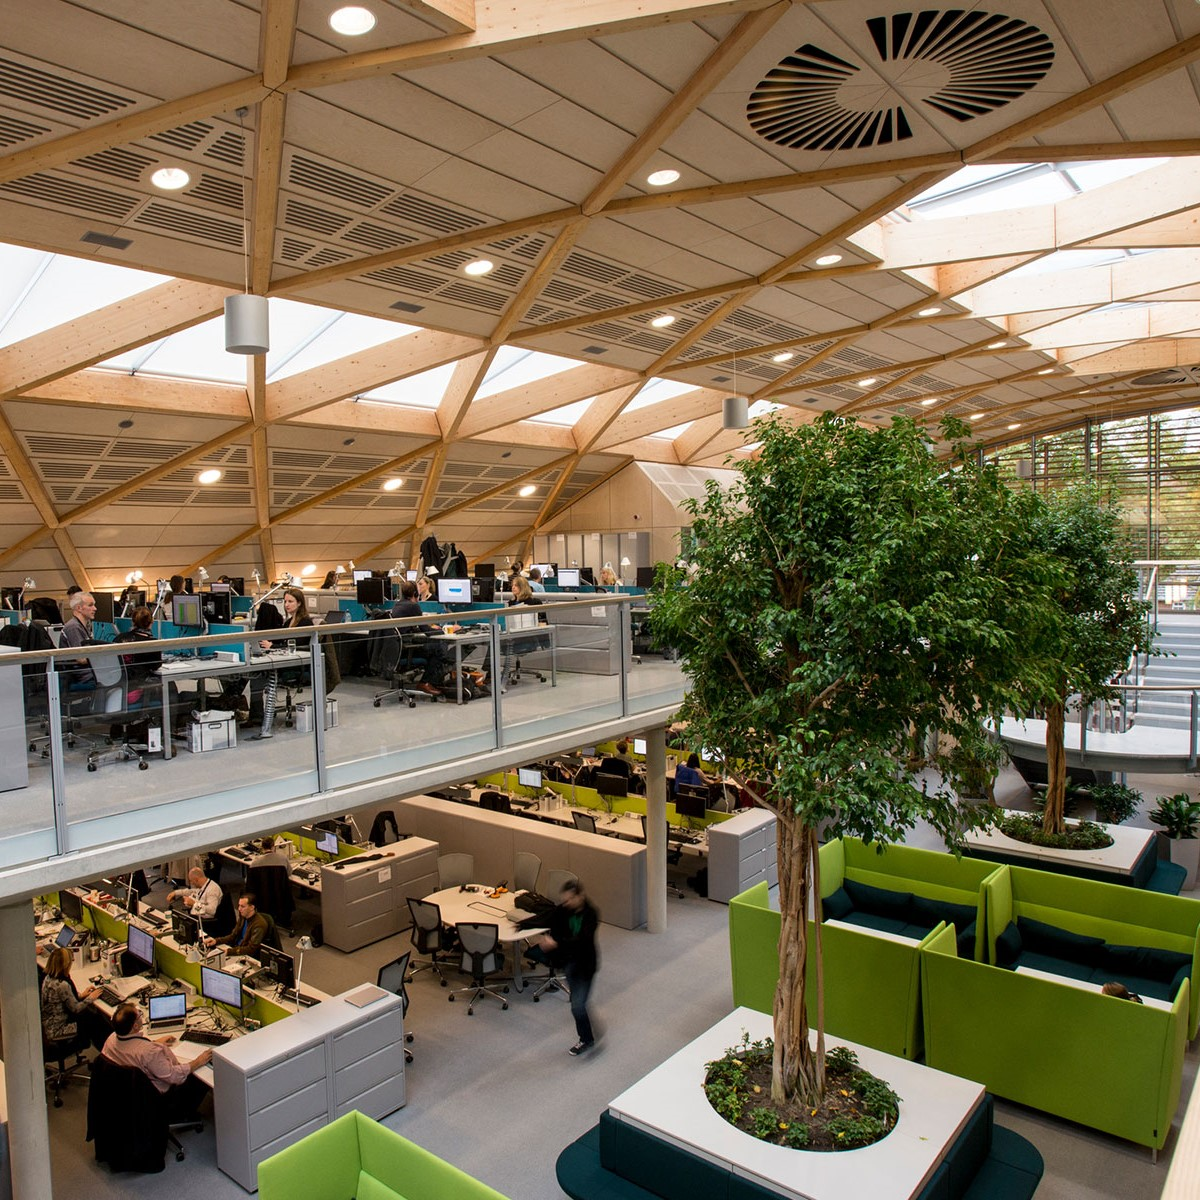 The WWF Living Planet Centre gives a taste of the office of the future